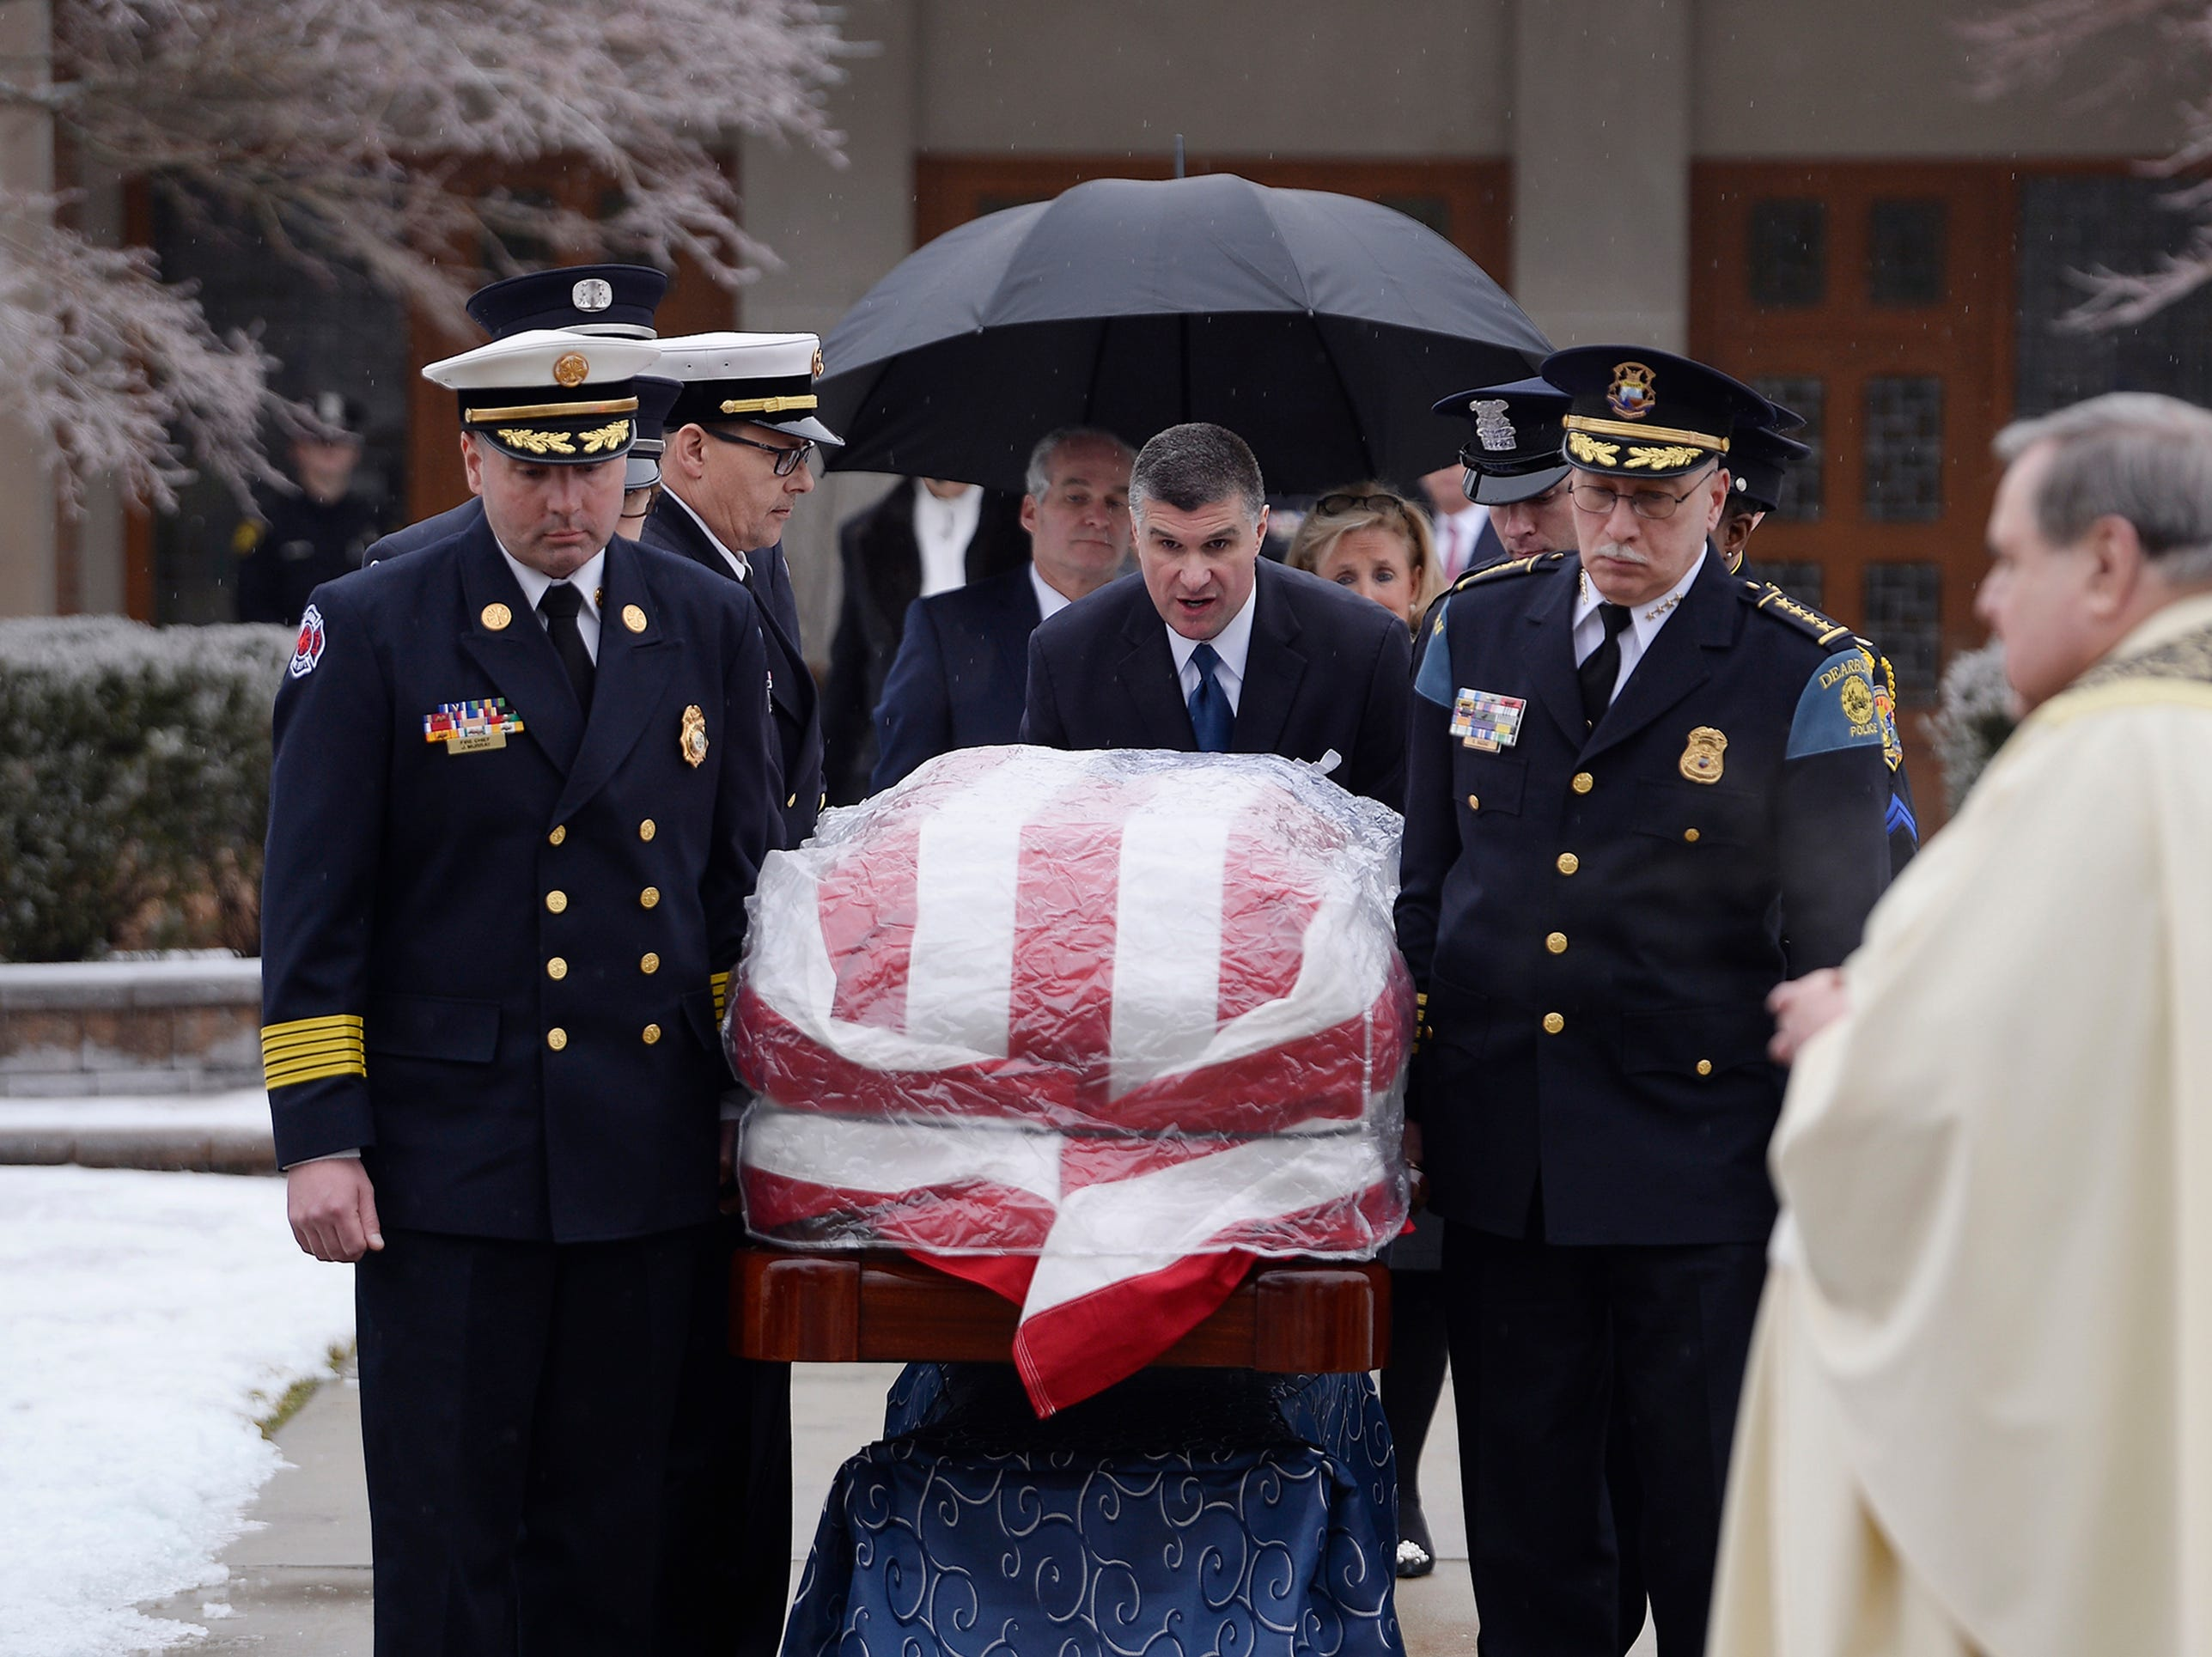 Dearborn Fire Chief Joseph Murray (left) and Dearborn Police Chief Ronald Haddad (right) along with other first responders carry the casket of former U.S. Rep. John D. Dingell to the hearse after the funeral.